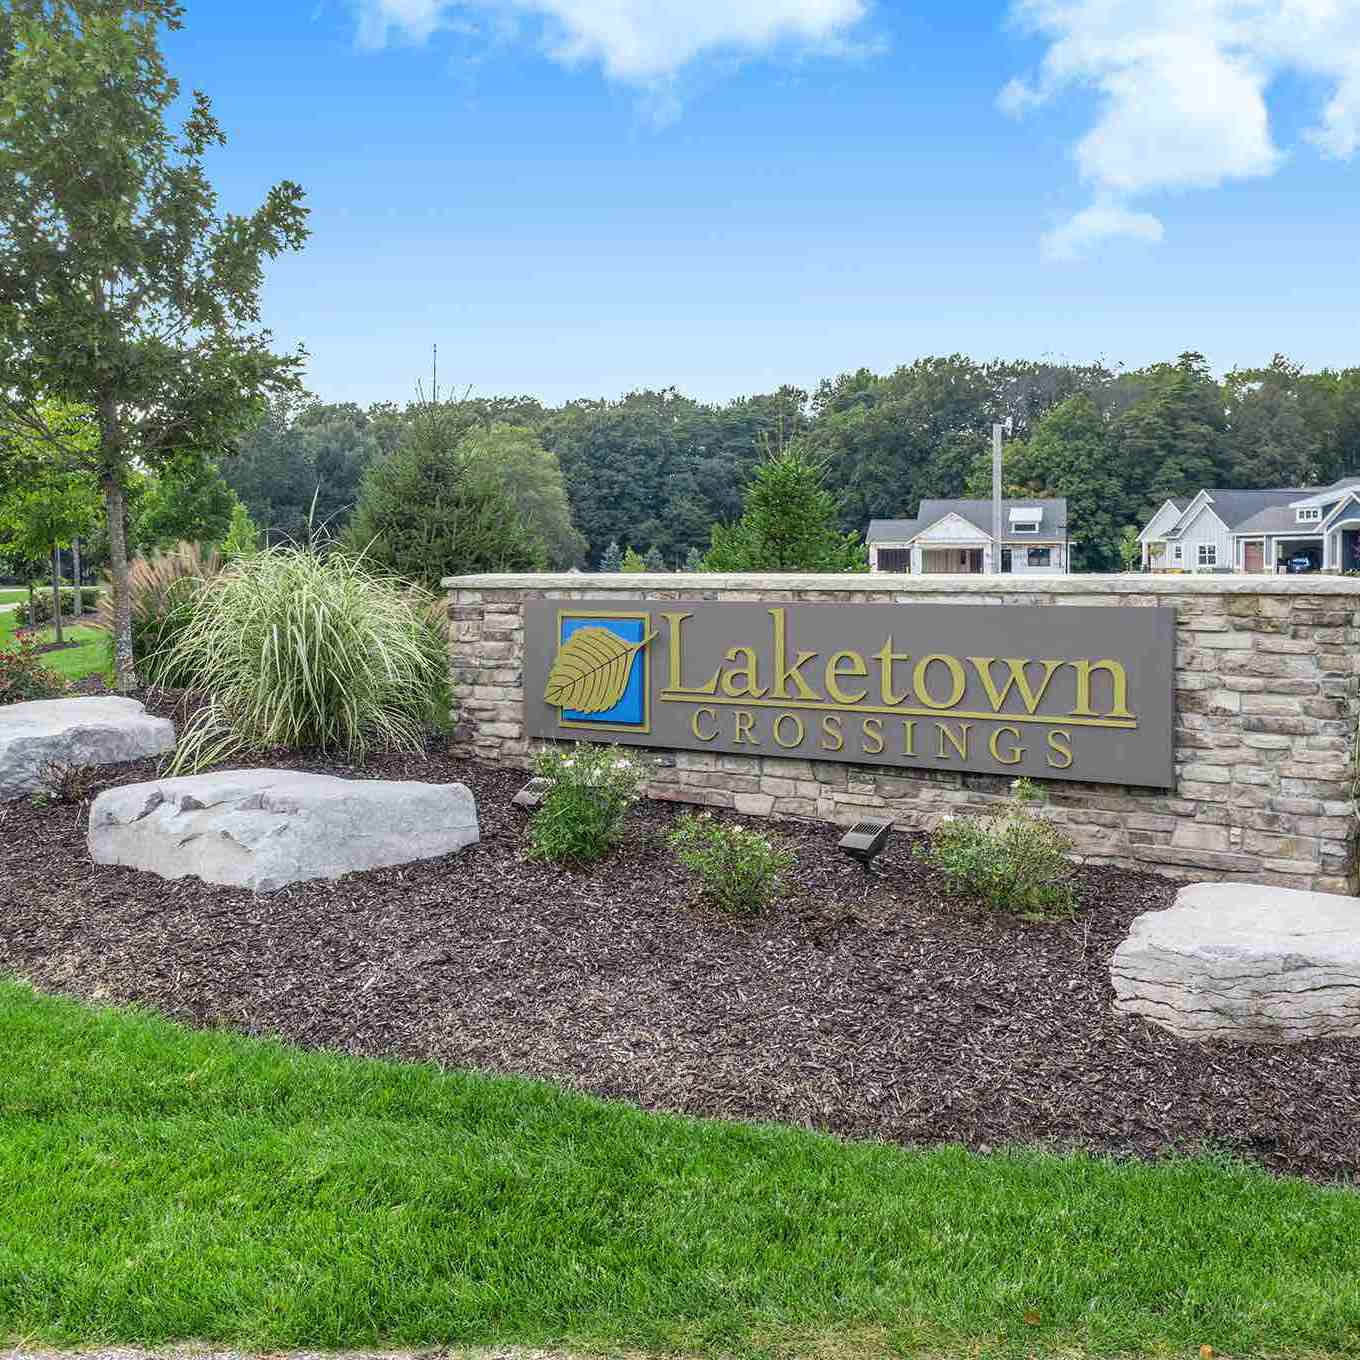 Laketown Crossings condos Holland MI front entrance sign